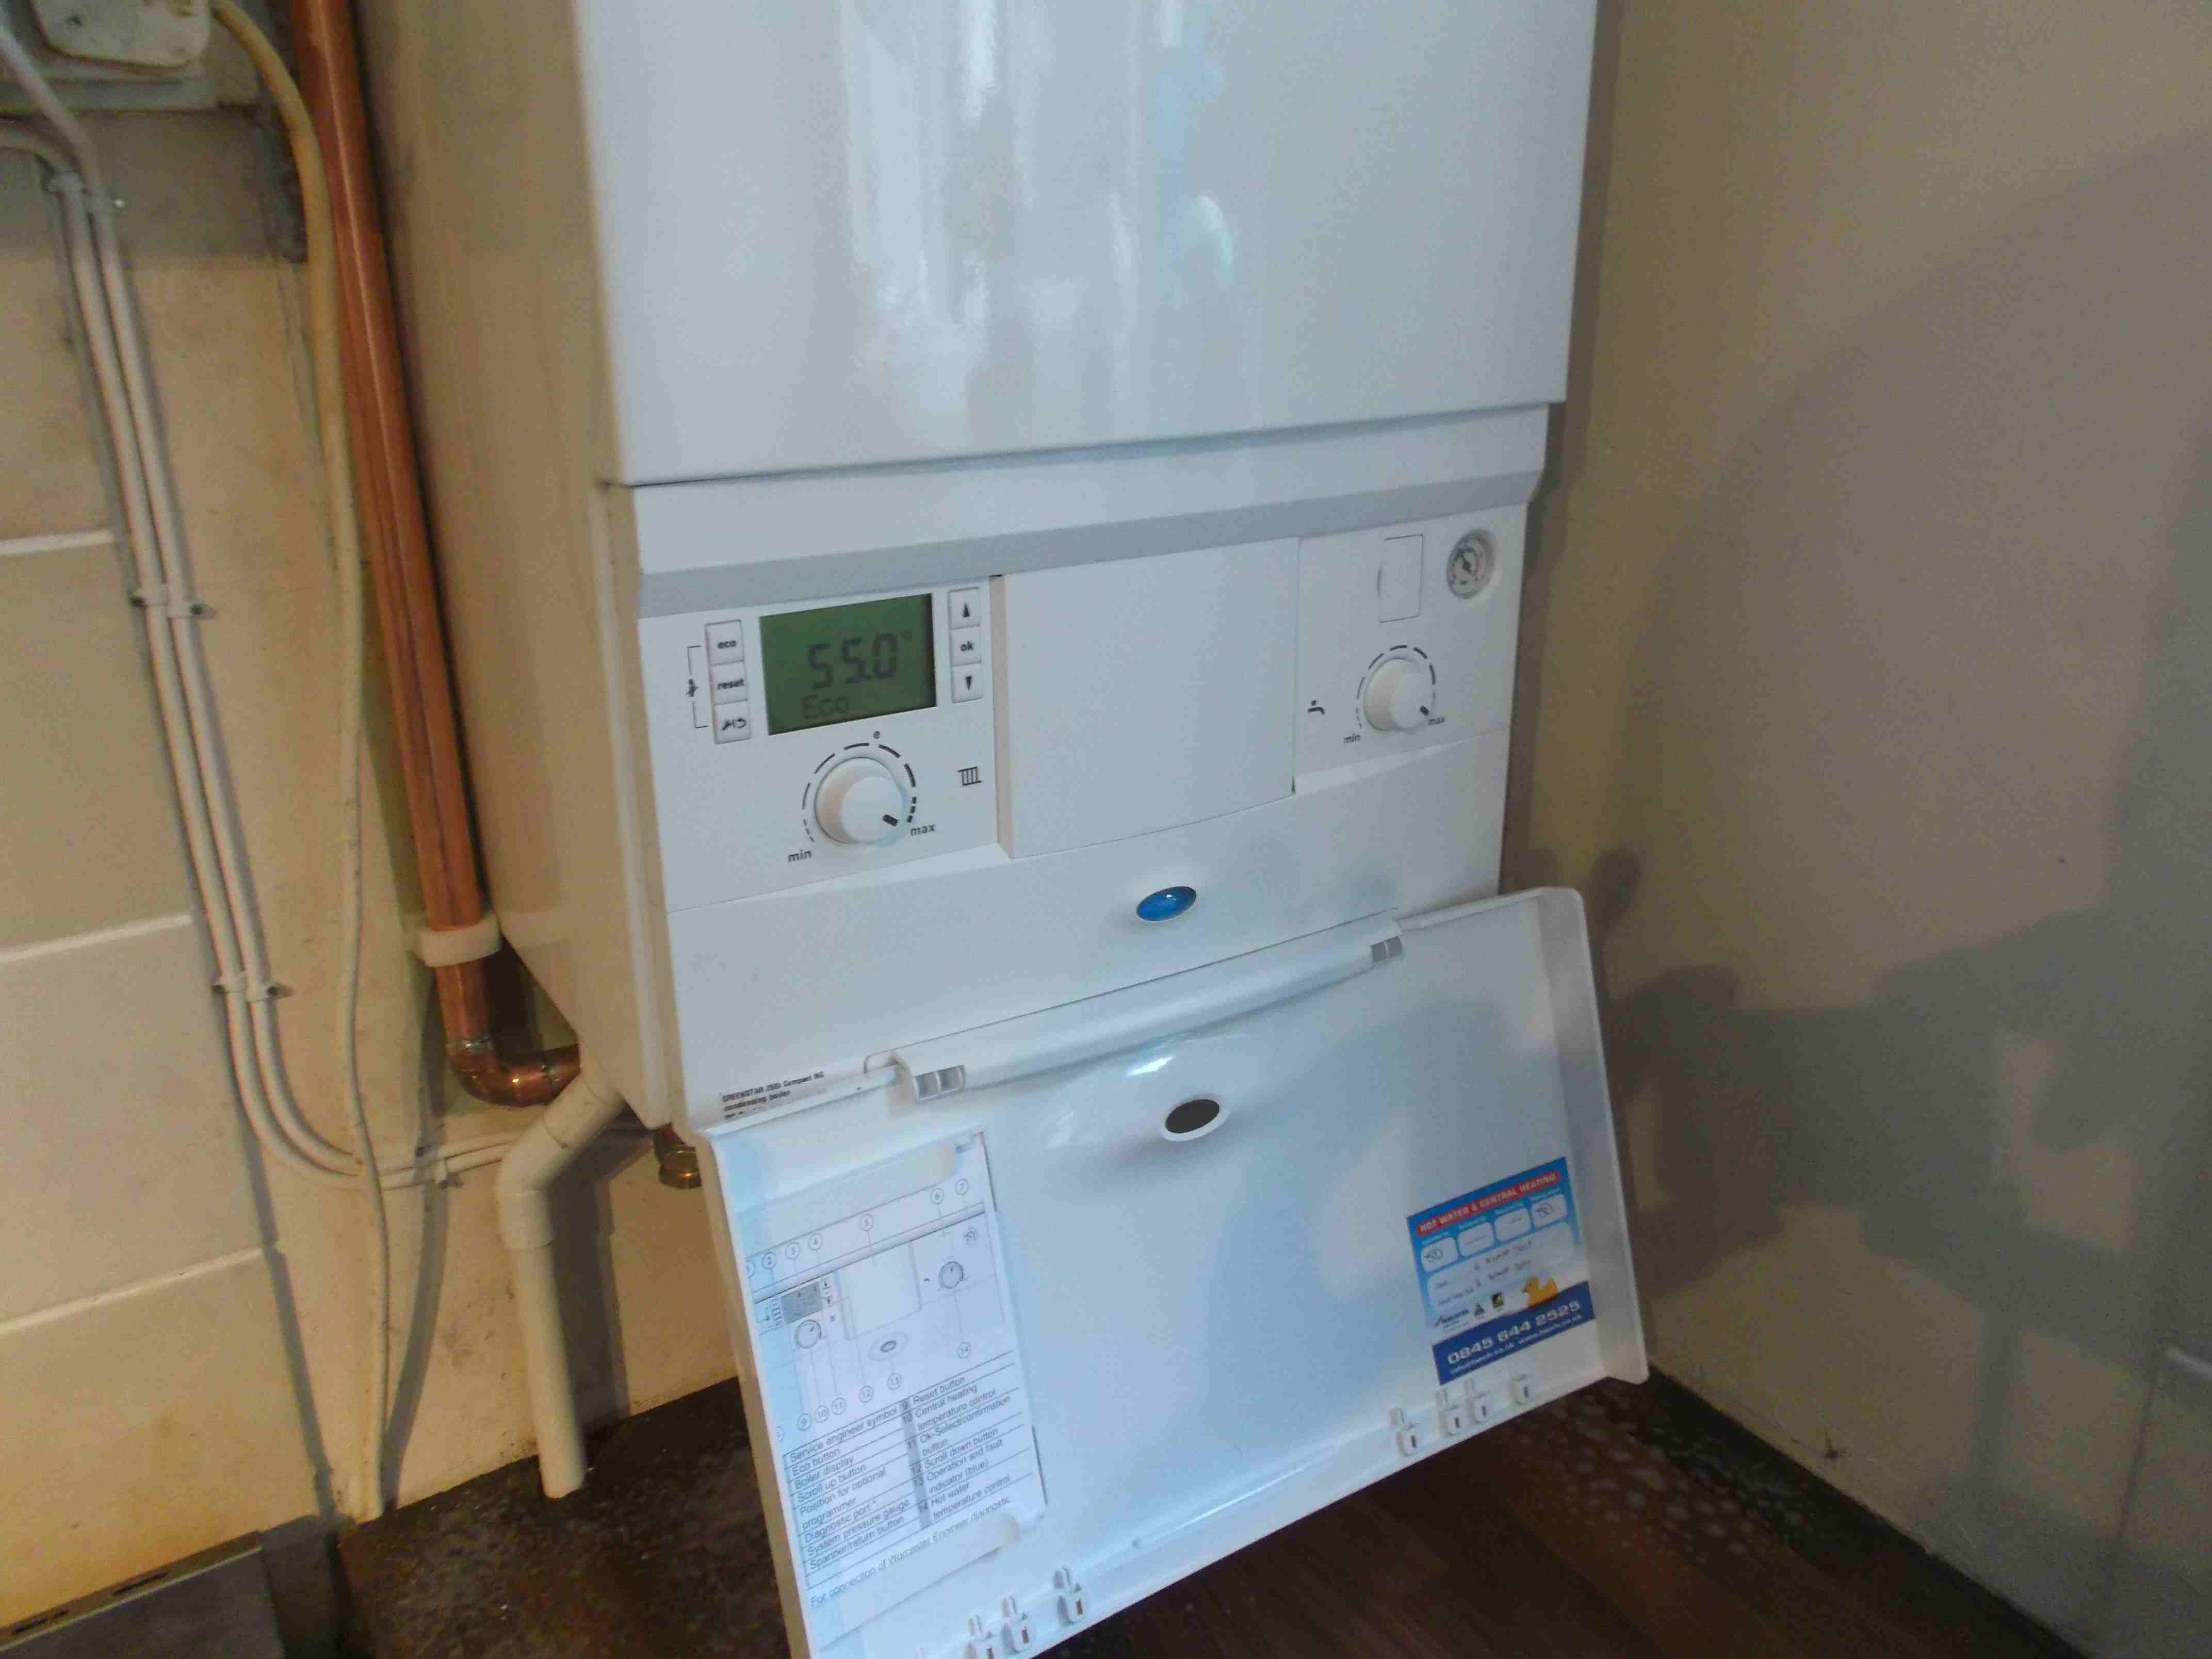 New 2013 Worcester-Bosch 25Si Compact - Hot Water and Central Heating